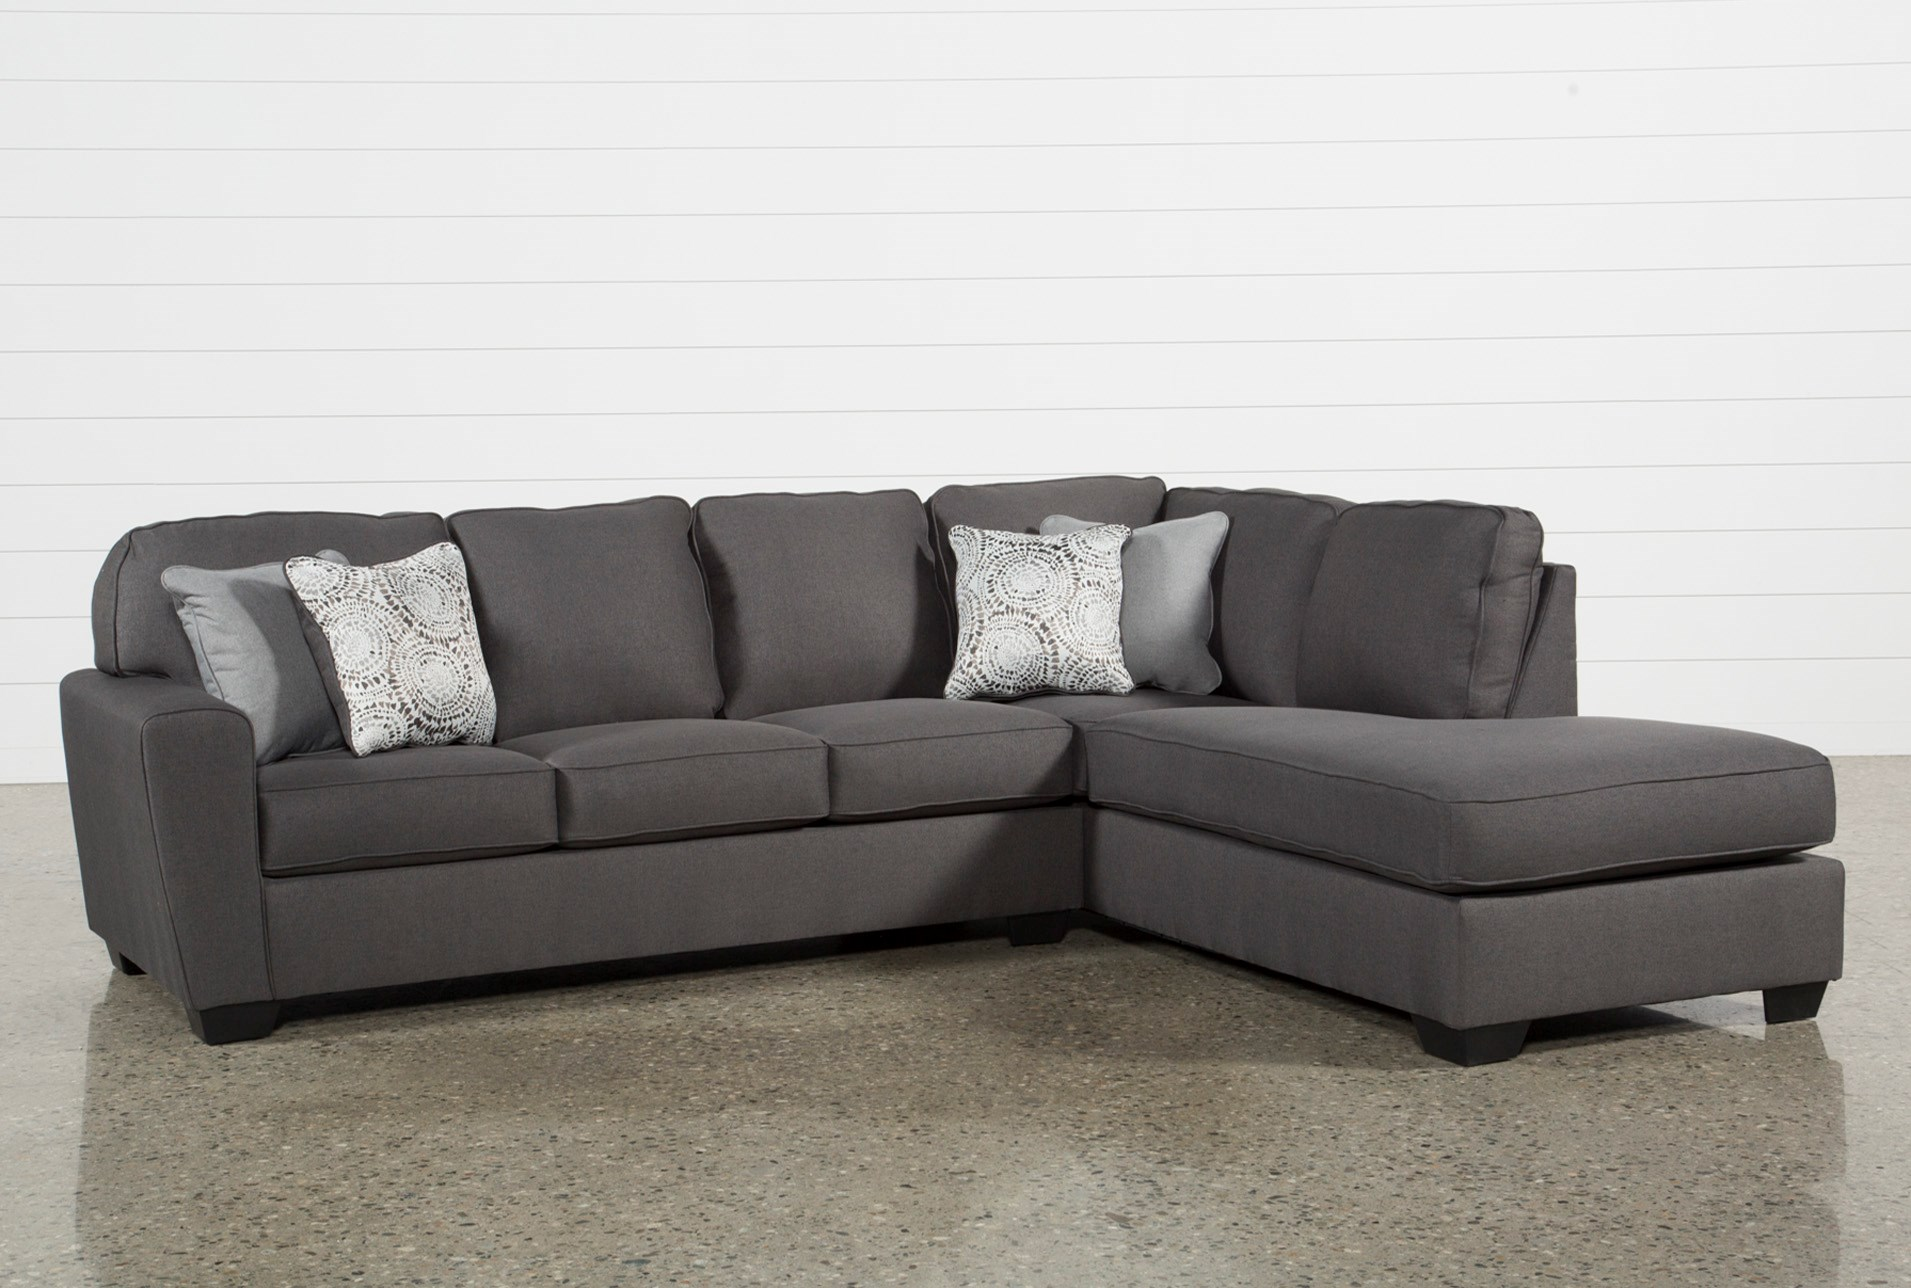 Mcdade Graphite 2 Piece Sectional with Right Arm Facing Chaise ...